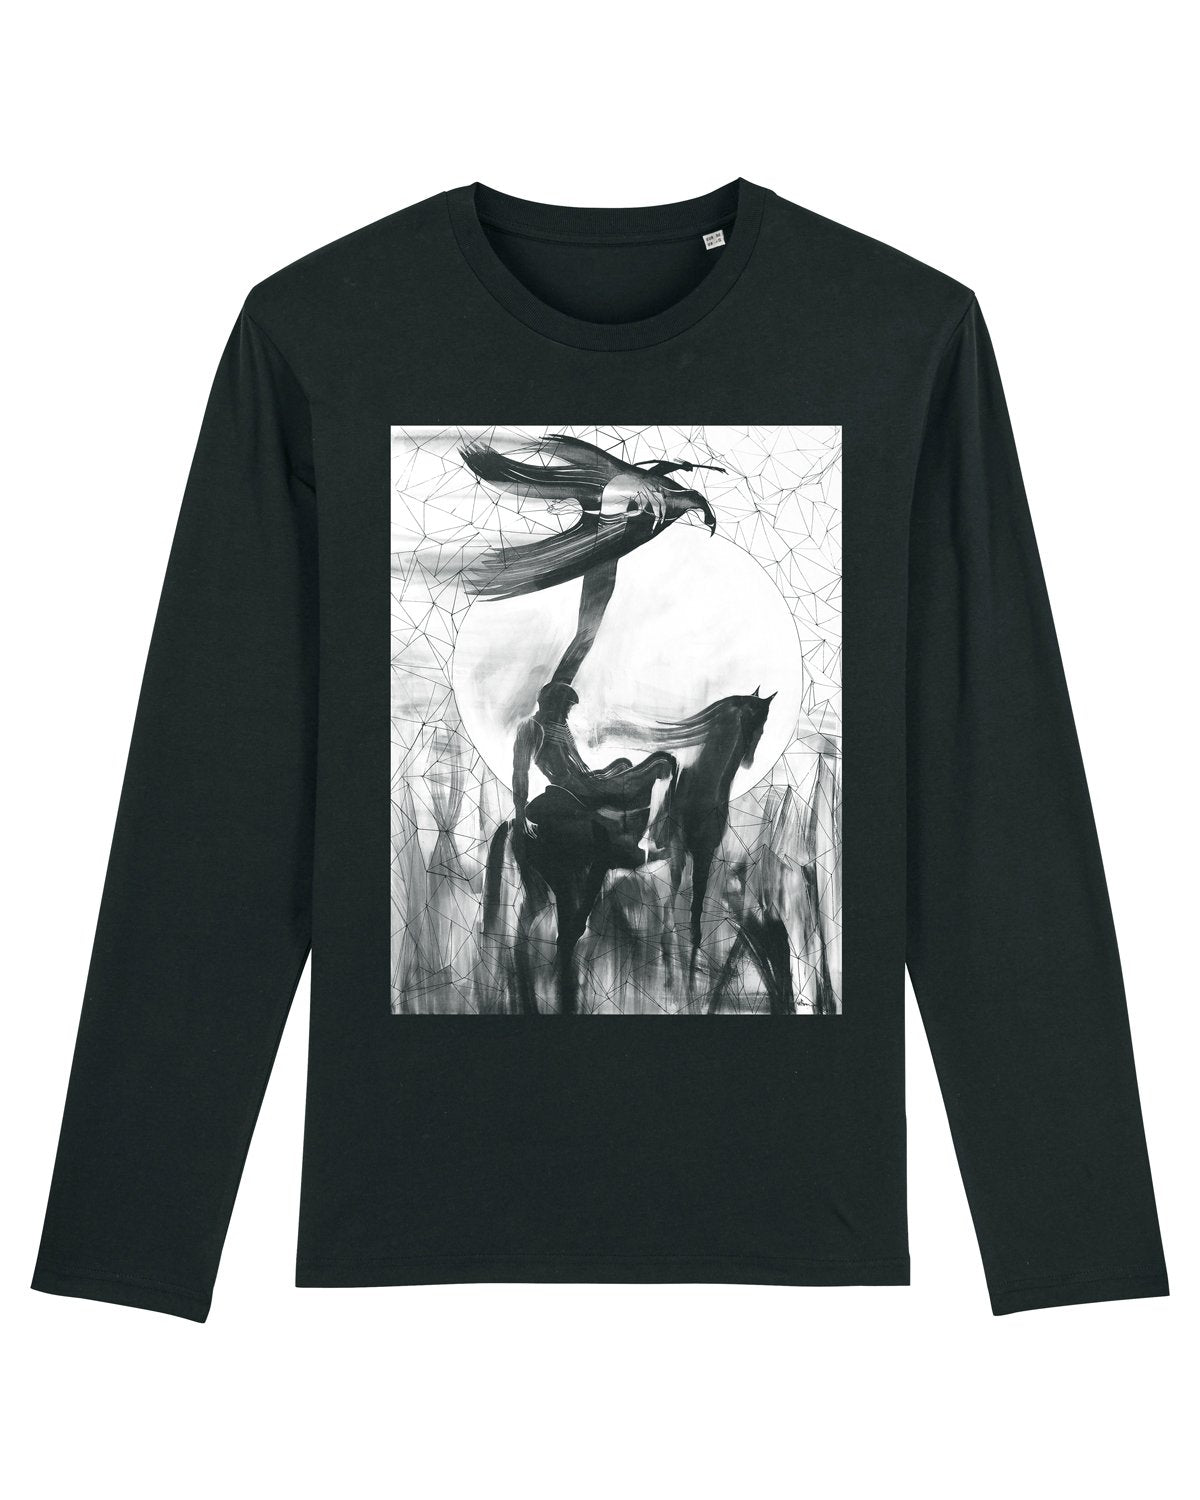 Will Barras 'Celestial finger' Long Sleeve T-Shirt